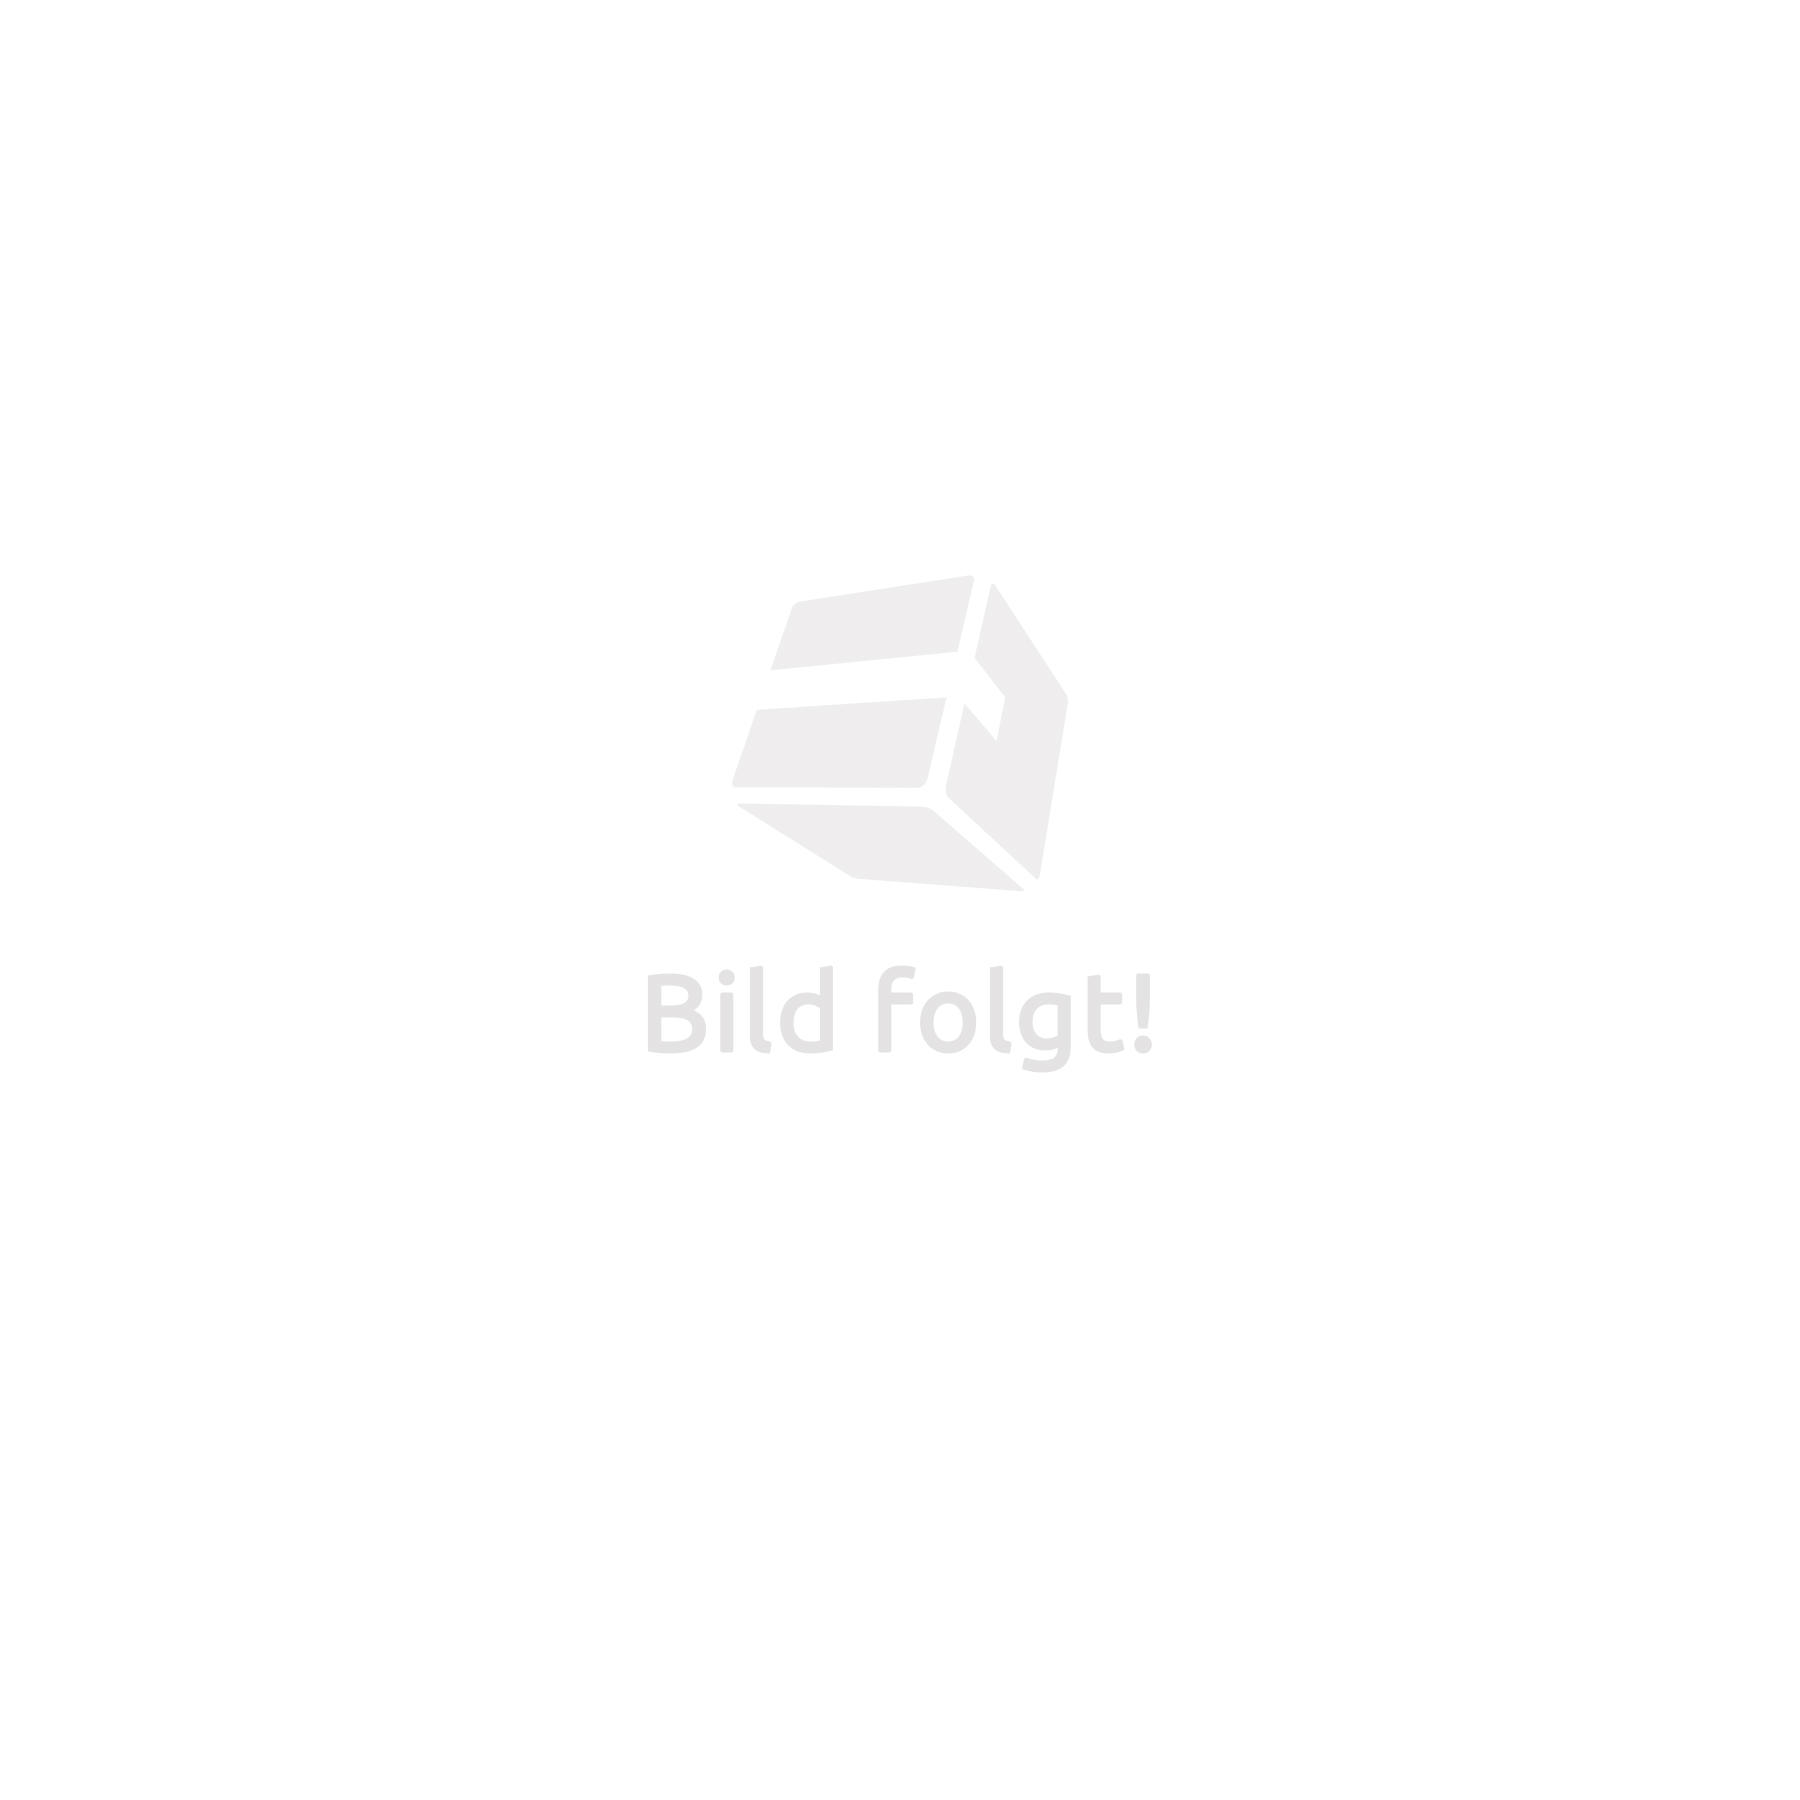 LED solar wall light with motion detector